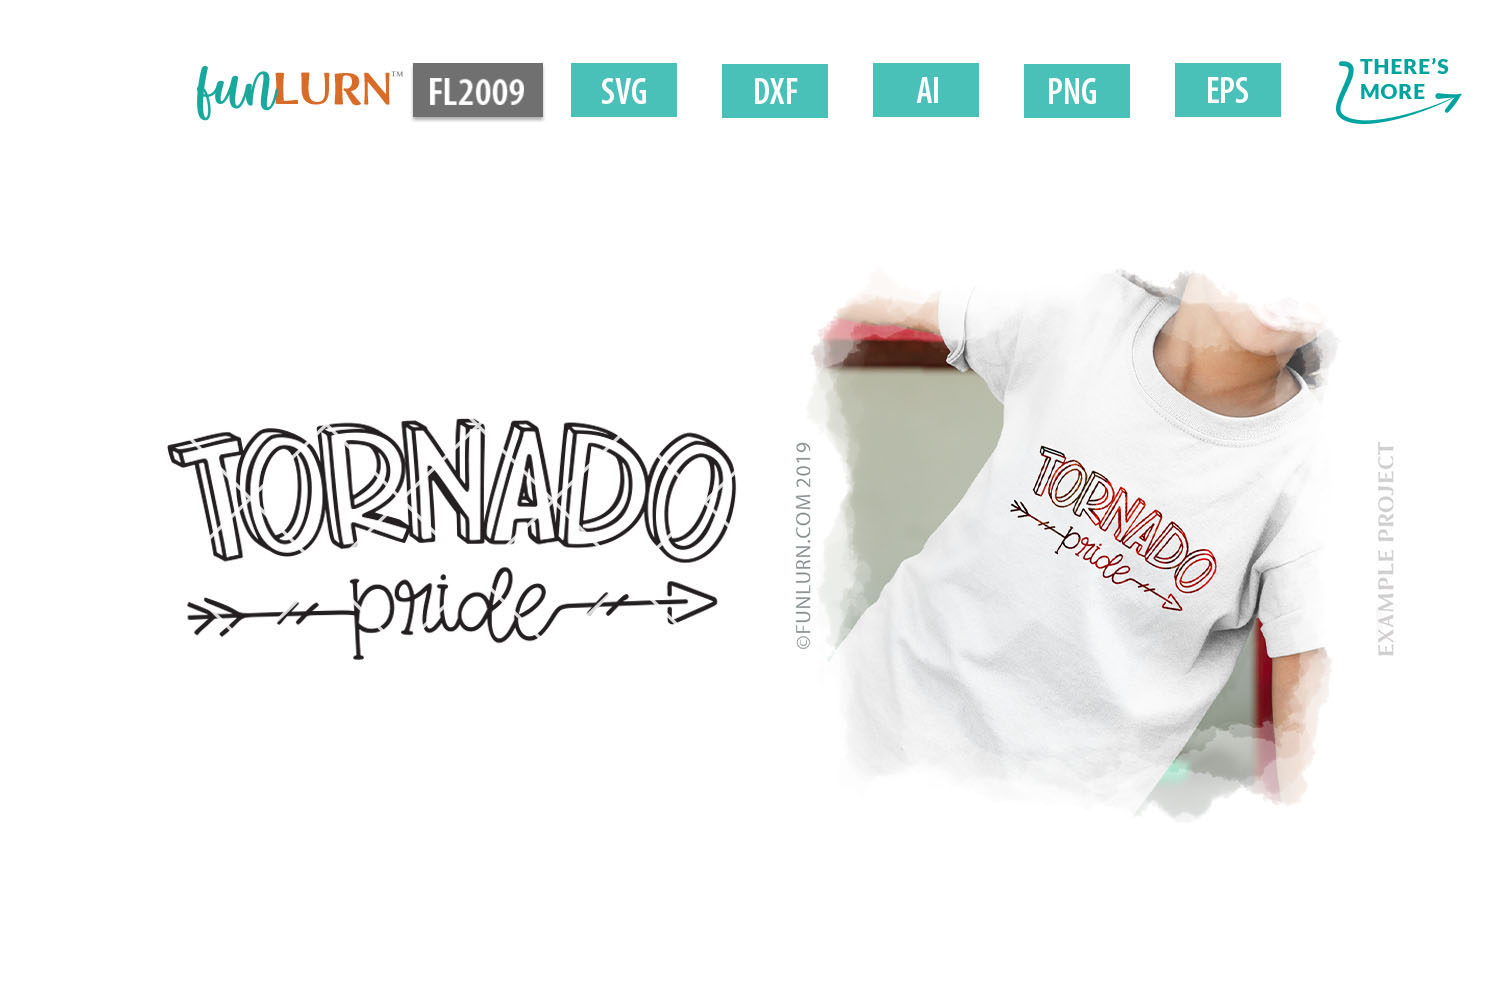 Tornado Pride Team SVG Cut File example image 1